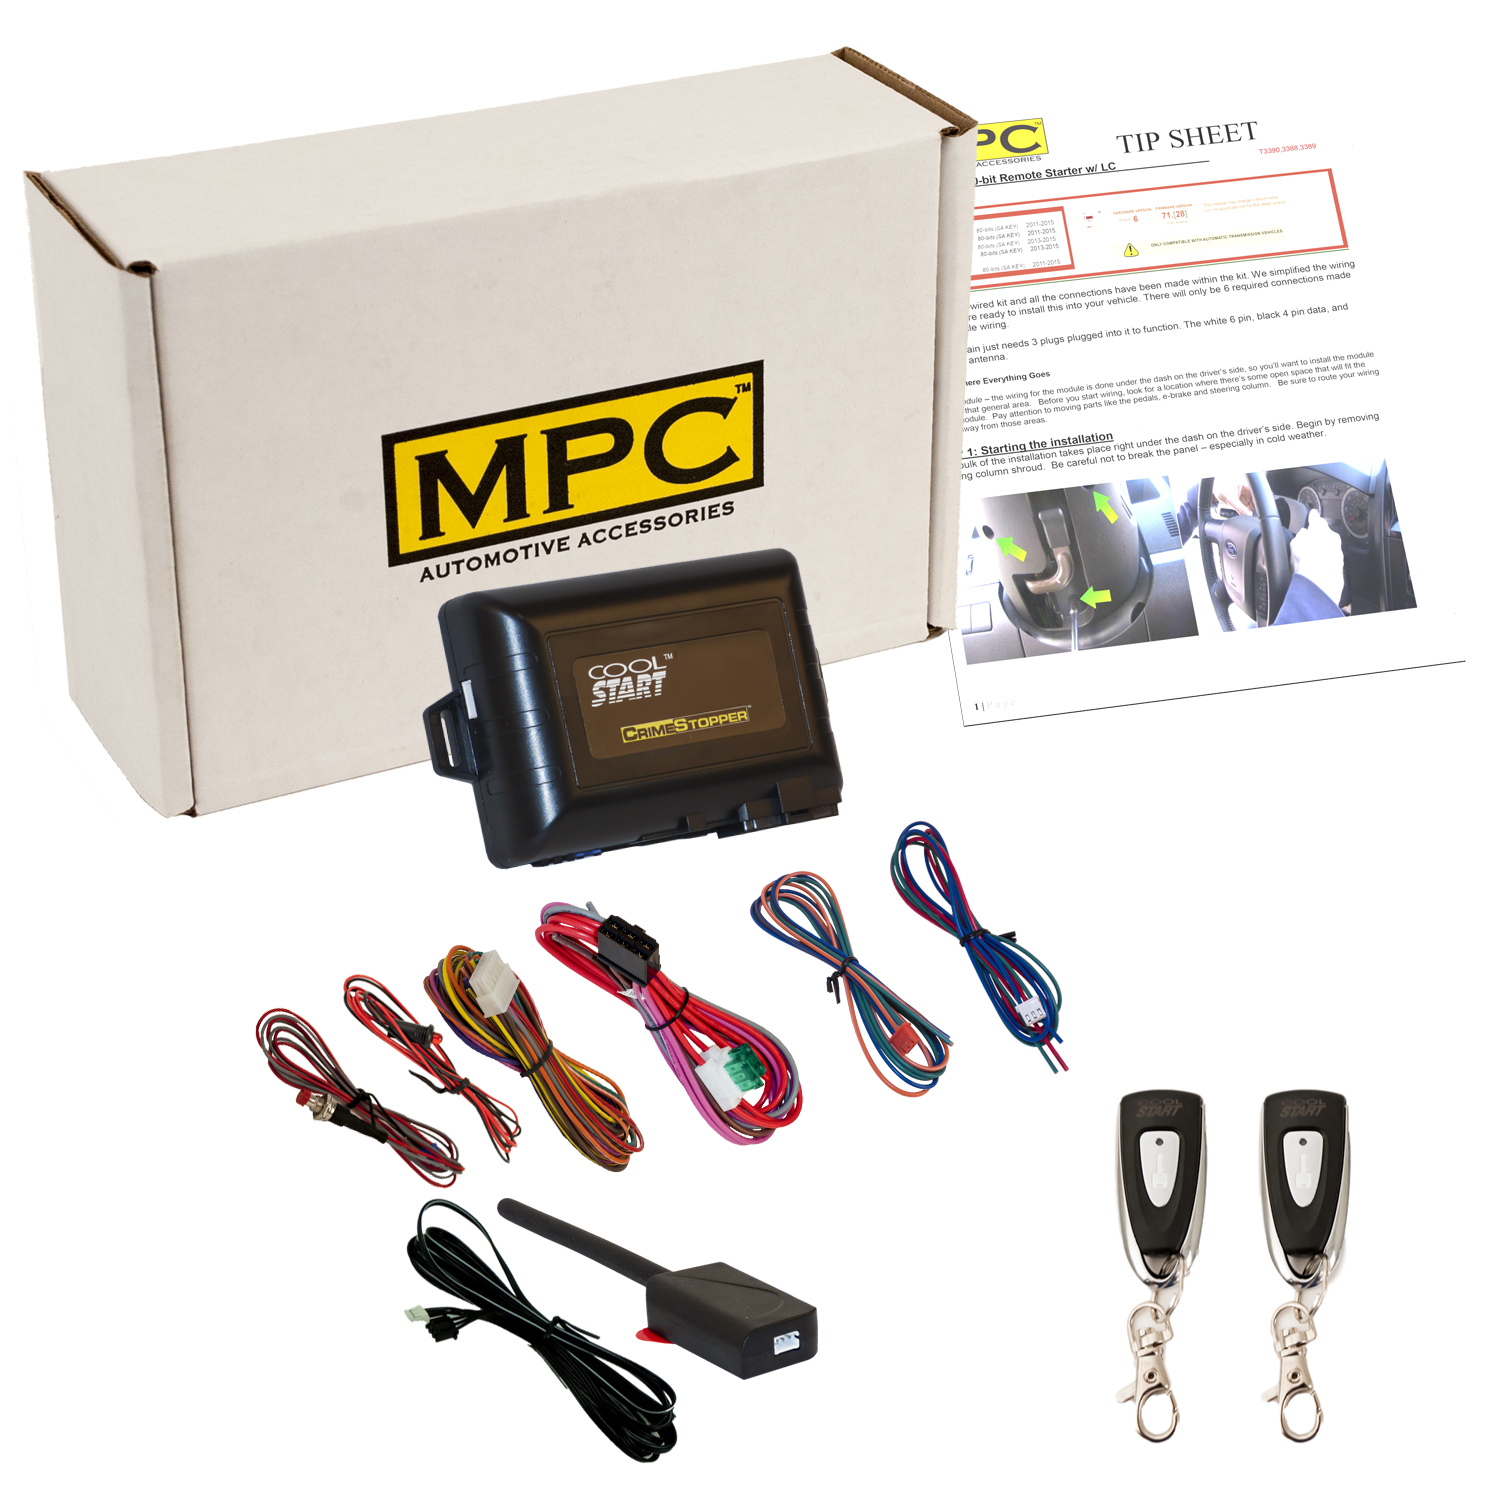 hight resolution of complete 1 button remote start kit for 2002 2004 ford f 250 super duty walmart com